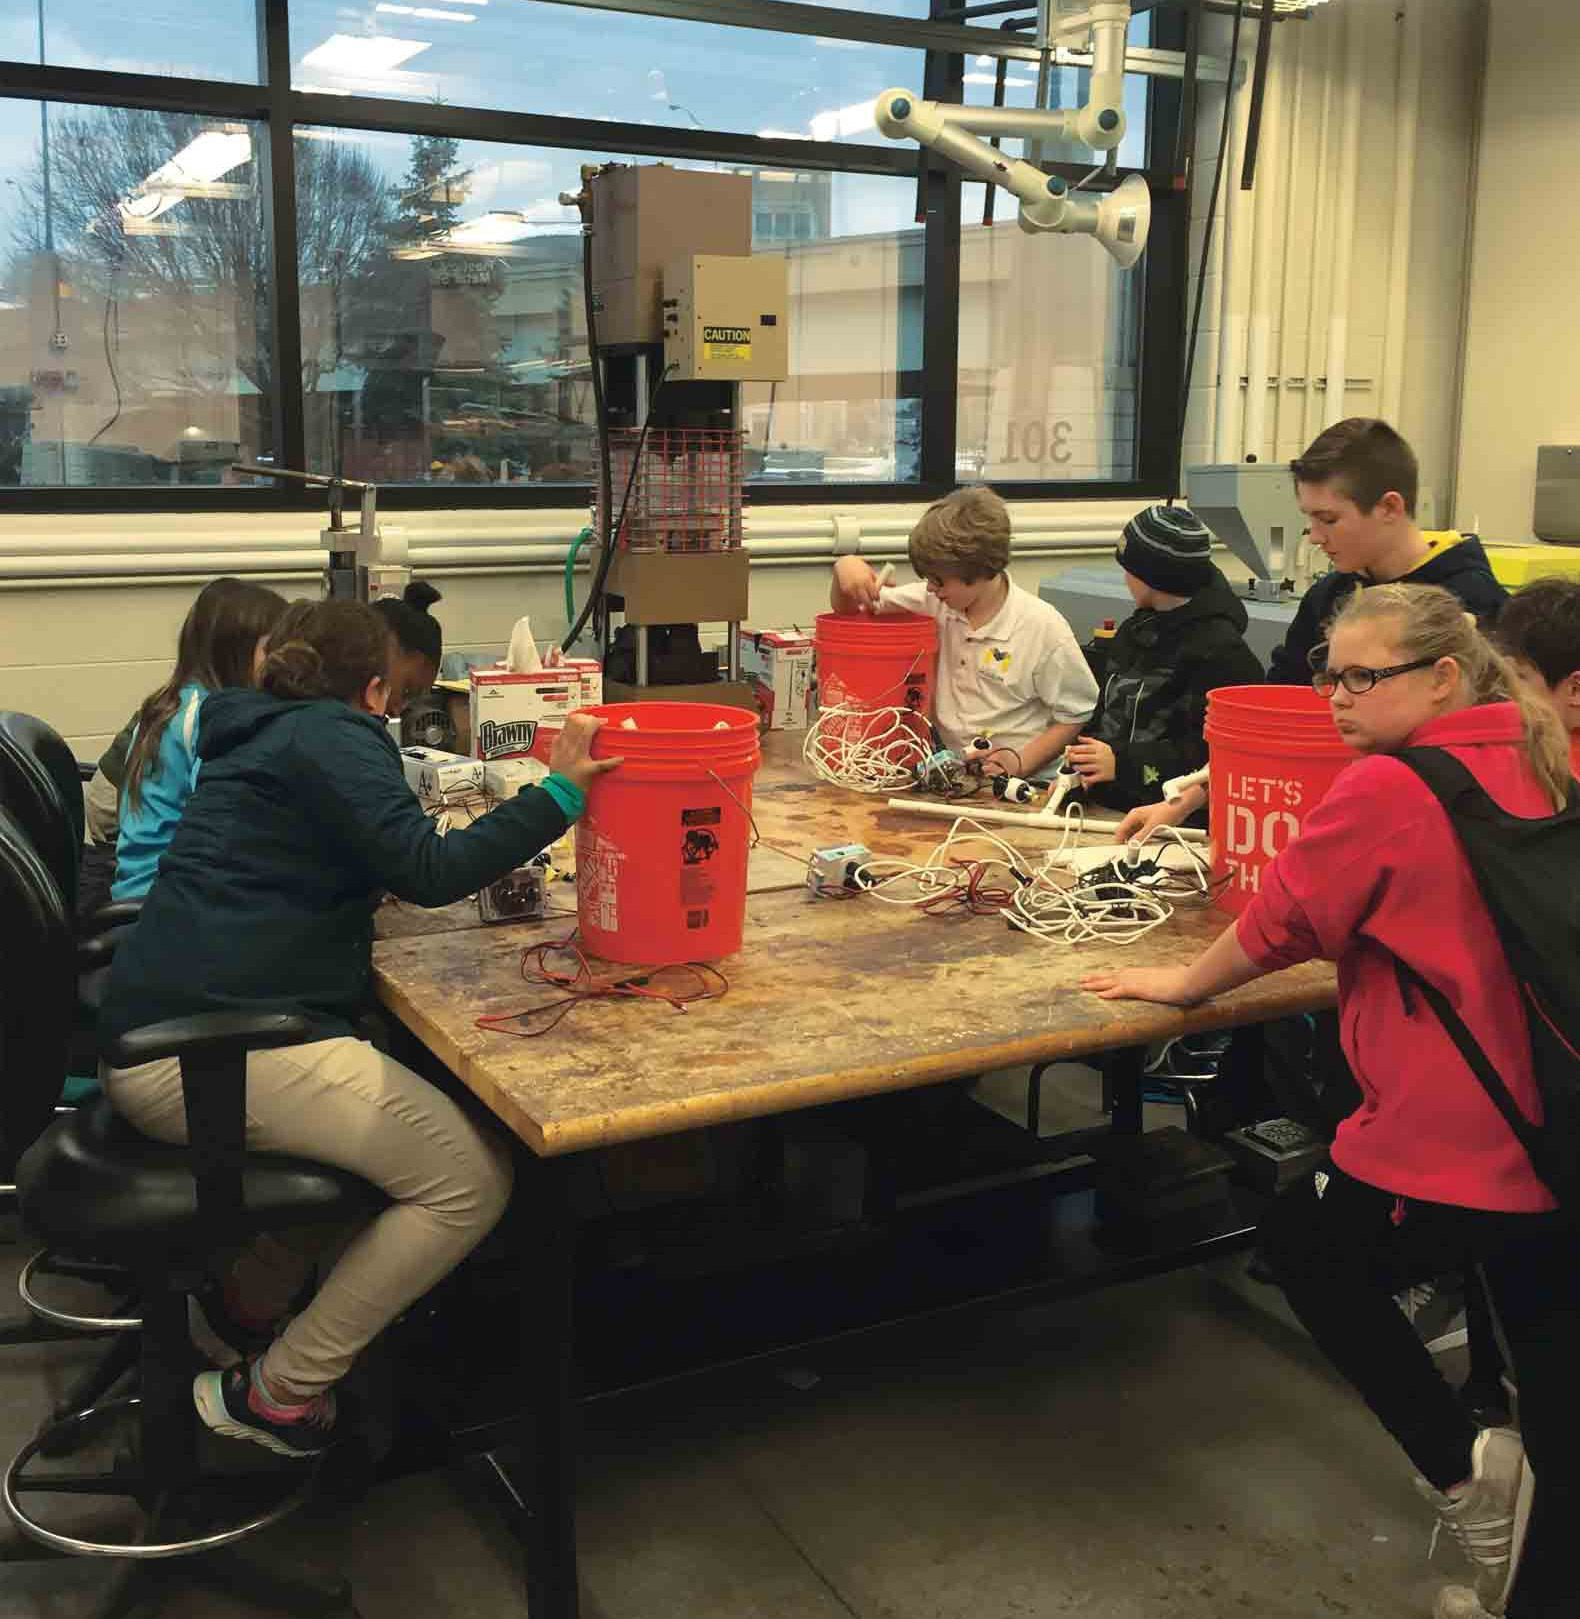 Hands-on learning occurs throughout the city for Museum School students. At Grand Valley State University, students take an underwater robotics class.